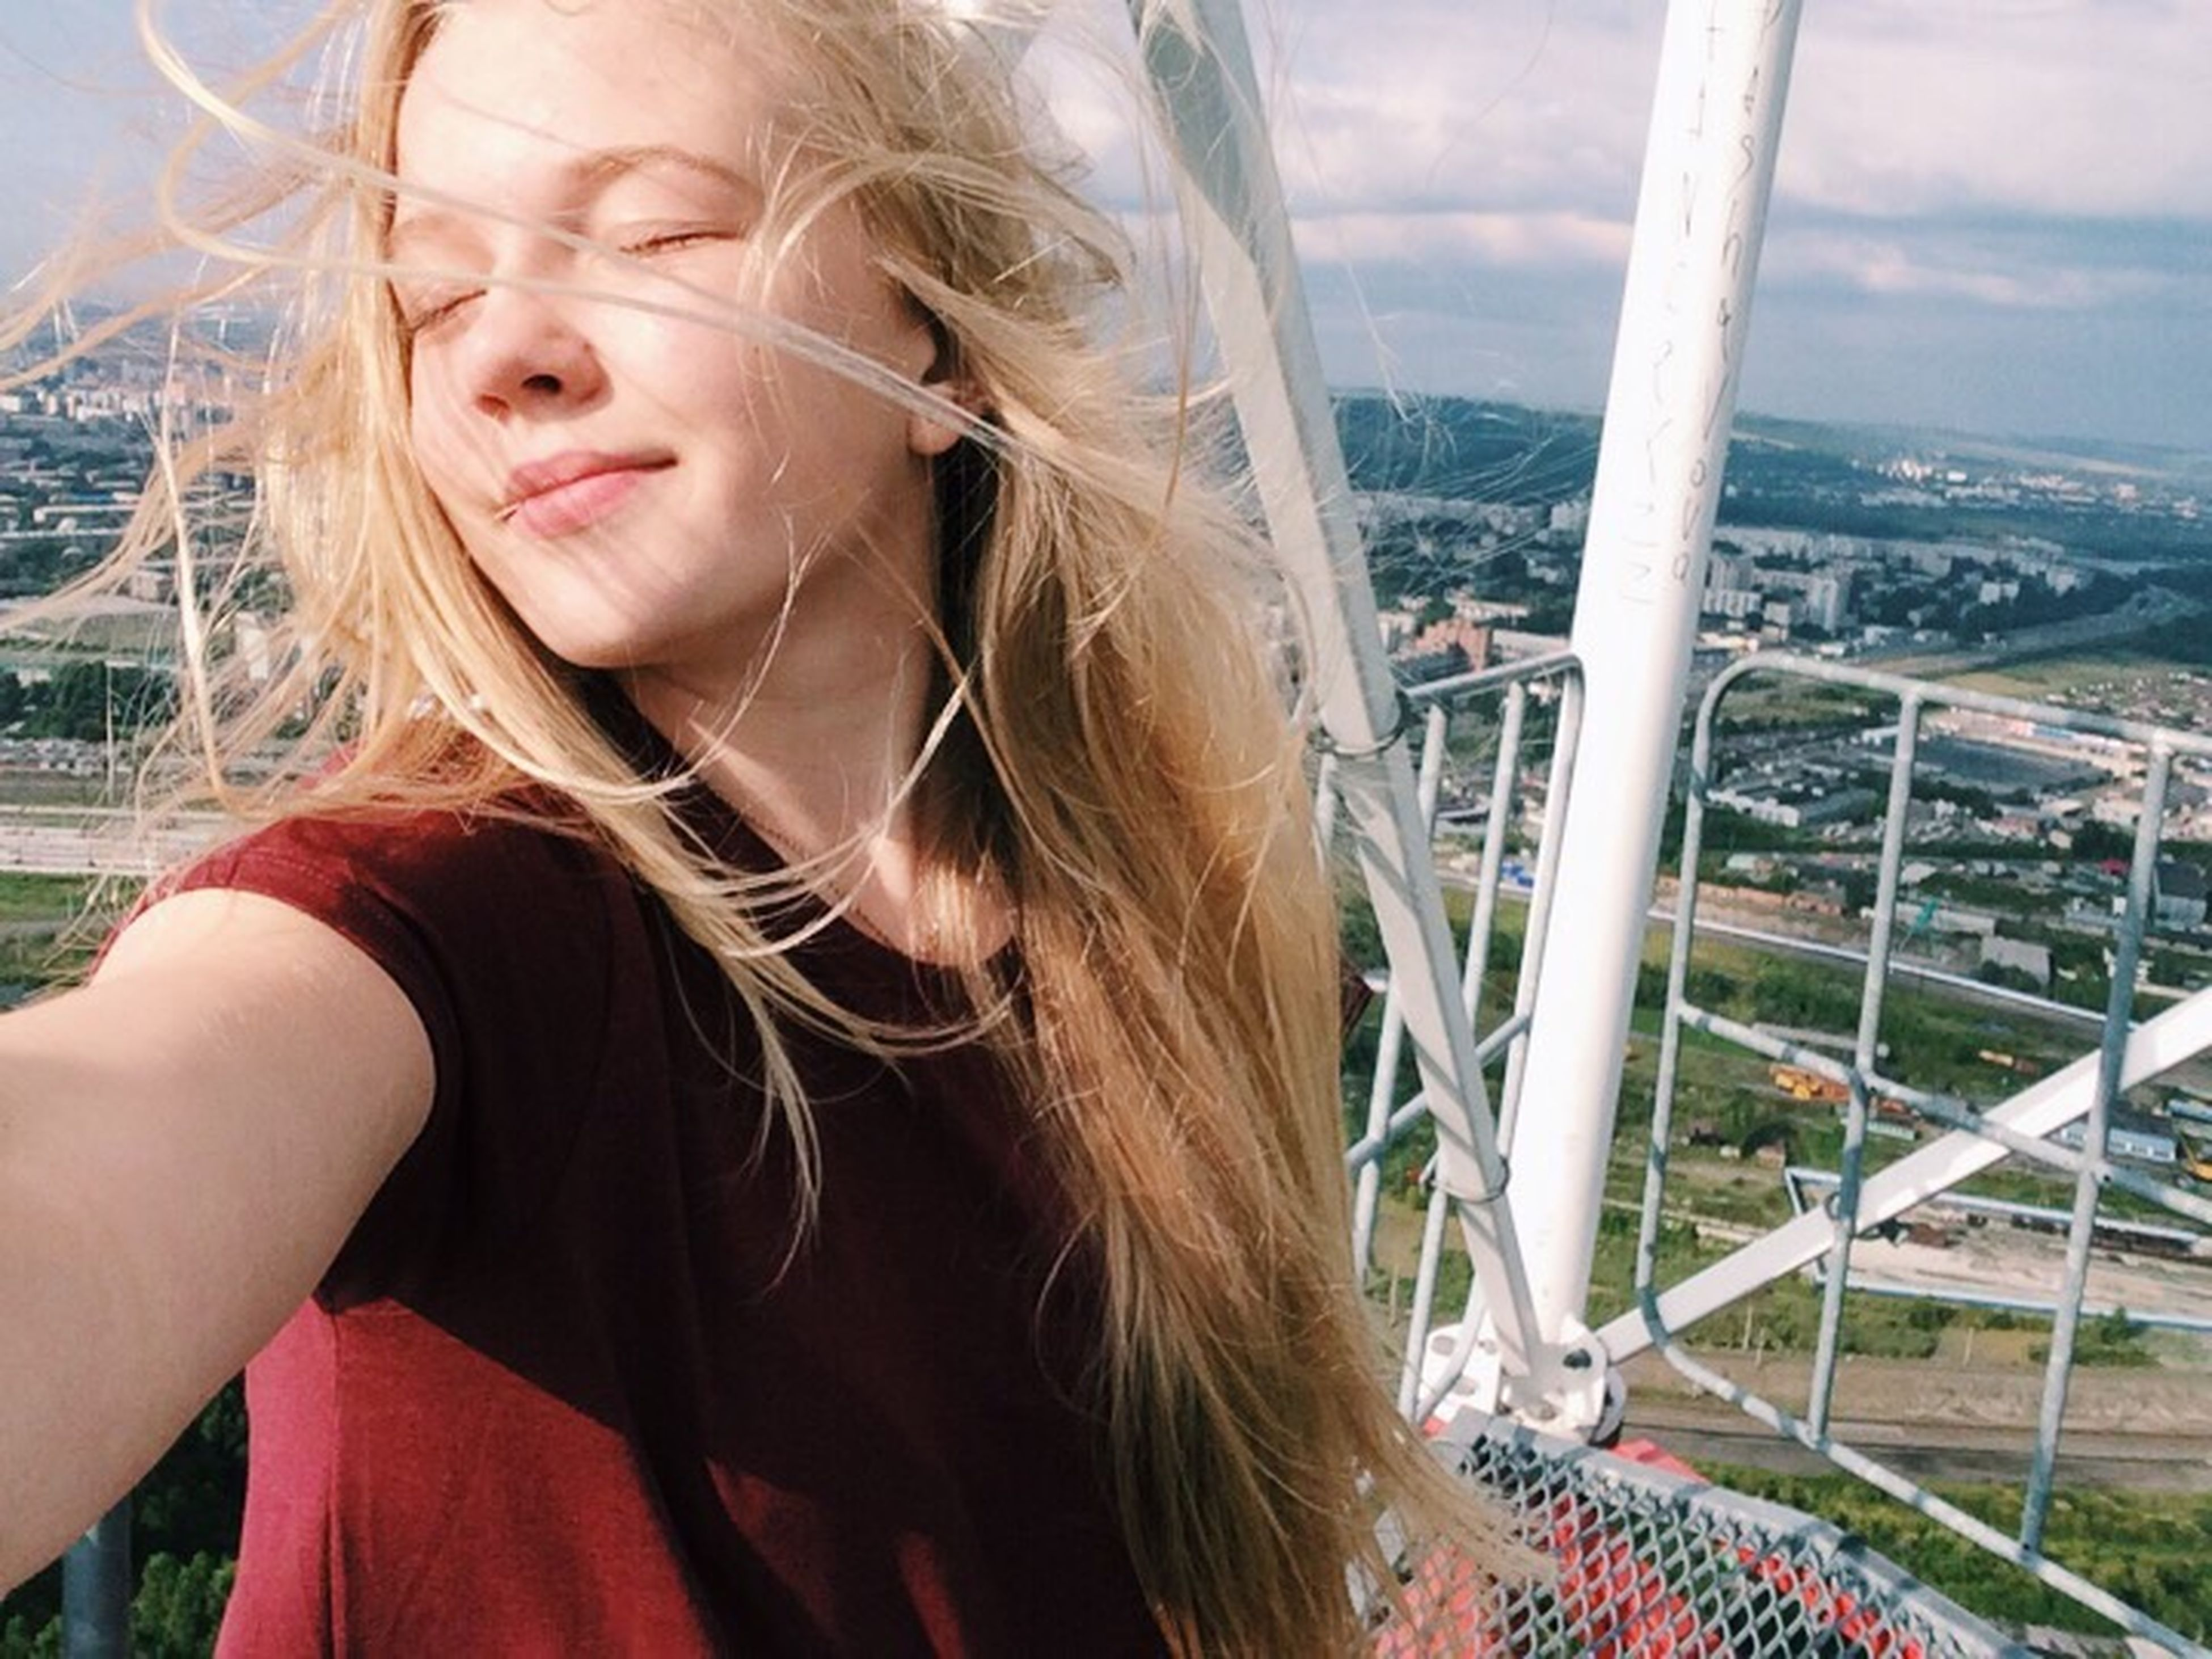 long hair, young women, young adult, railing, balcony, beauty, person, day